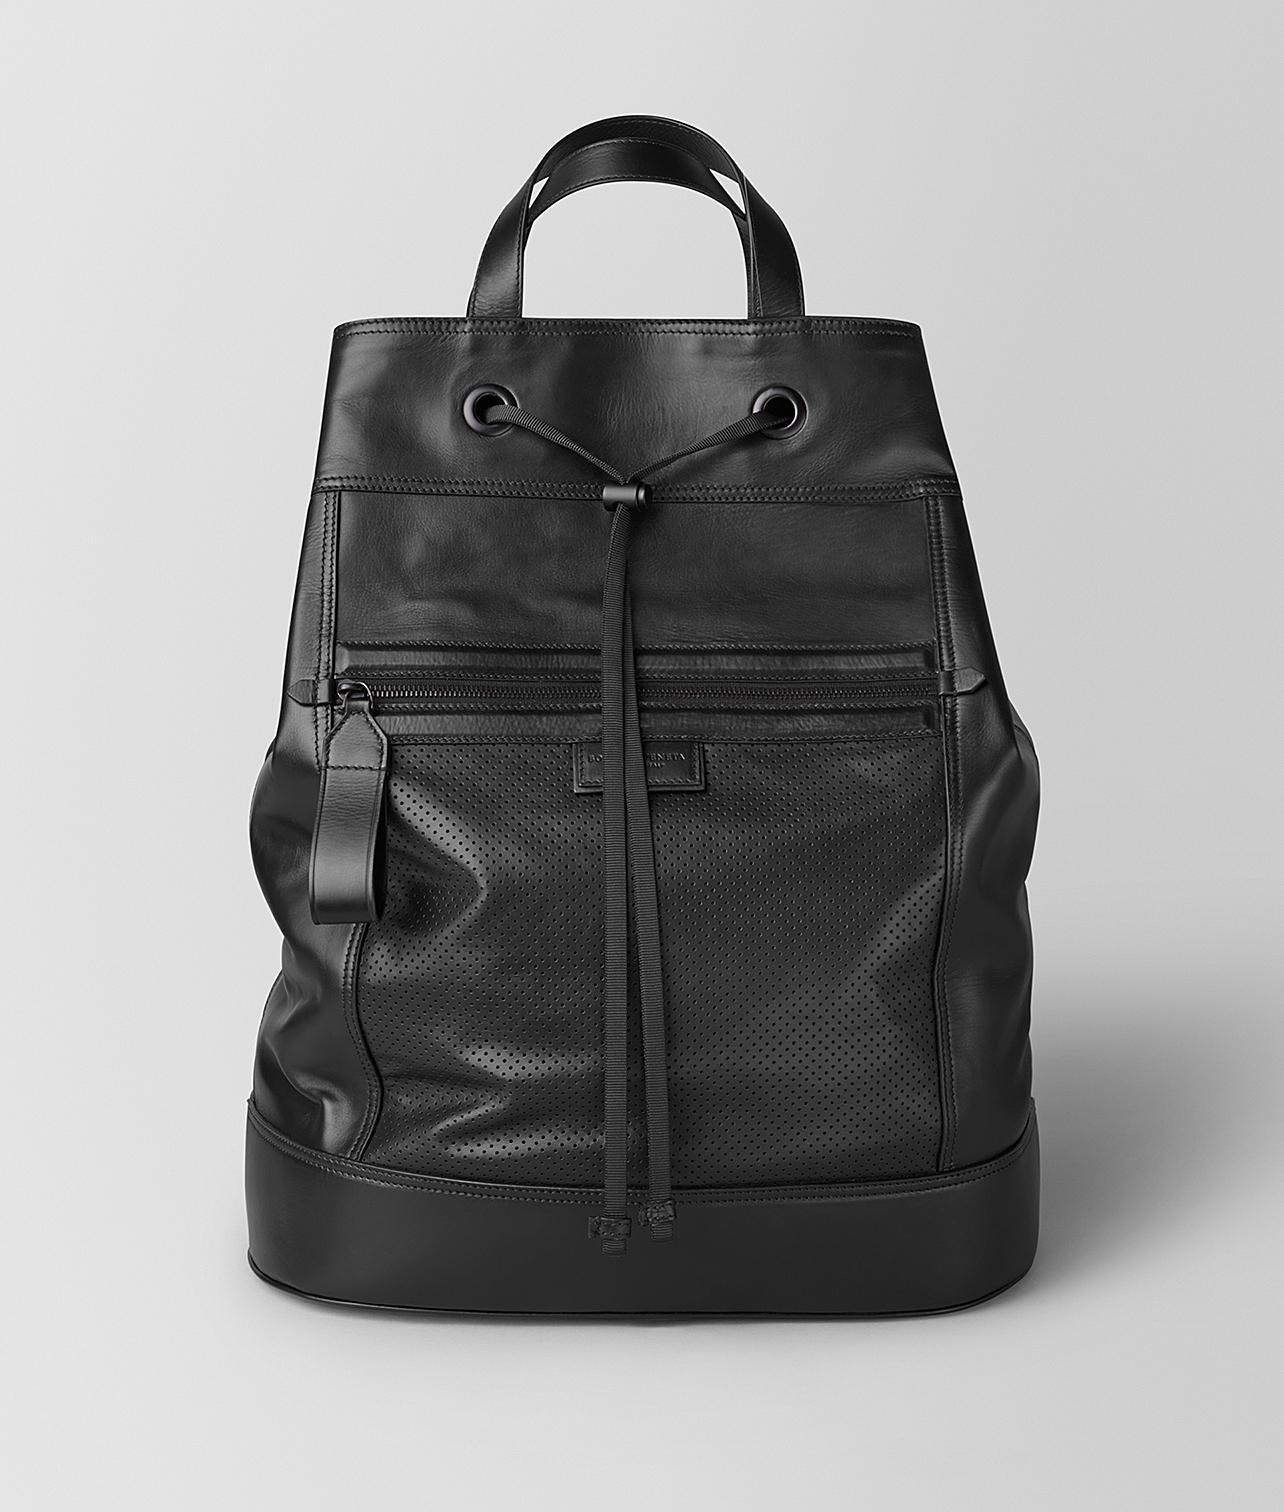 03b0b3650c Bottega Veneta Backpack In LEGGERO in Black for Men - Lyst